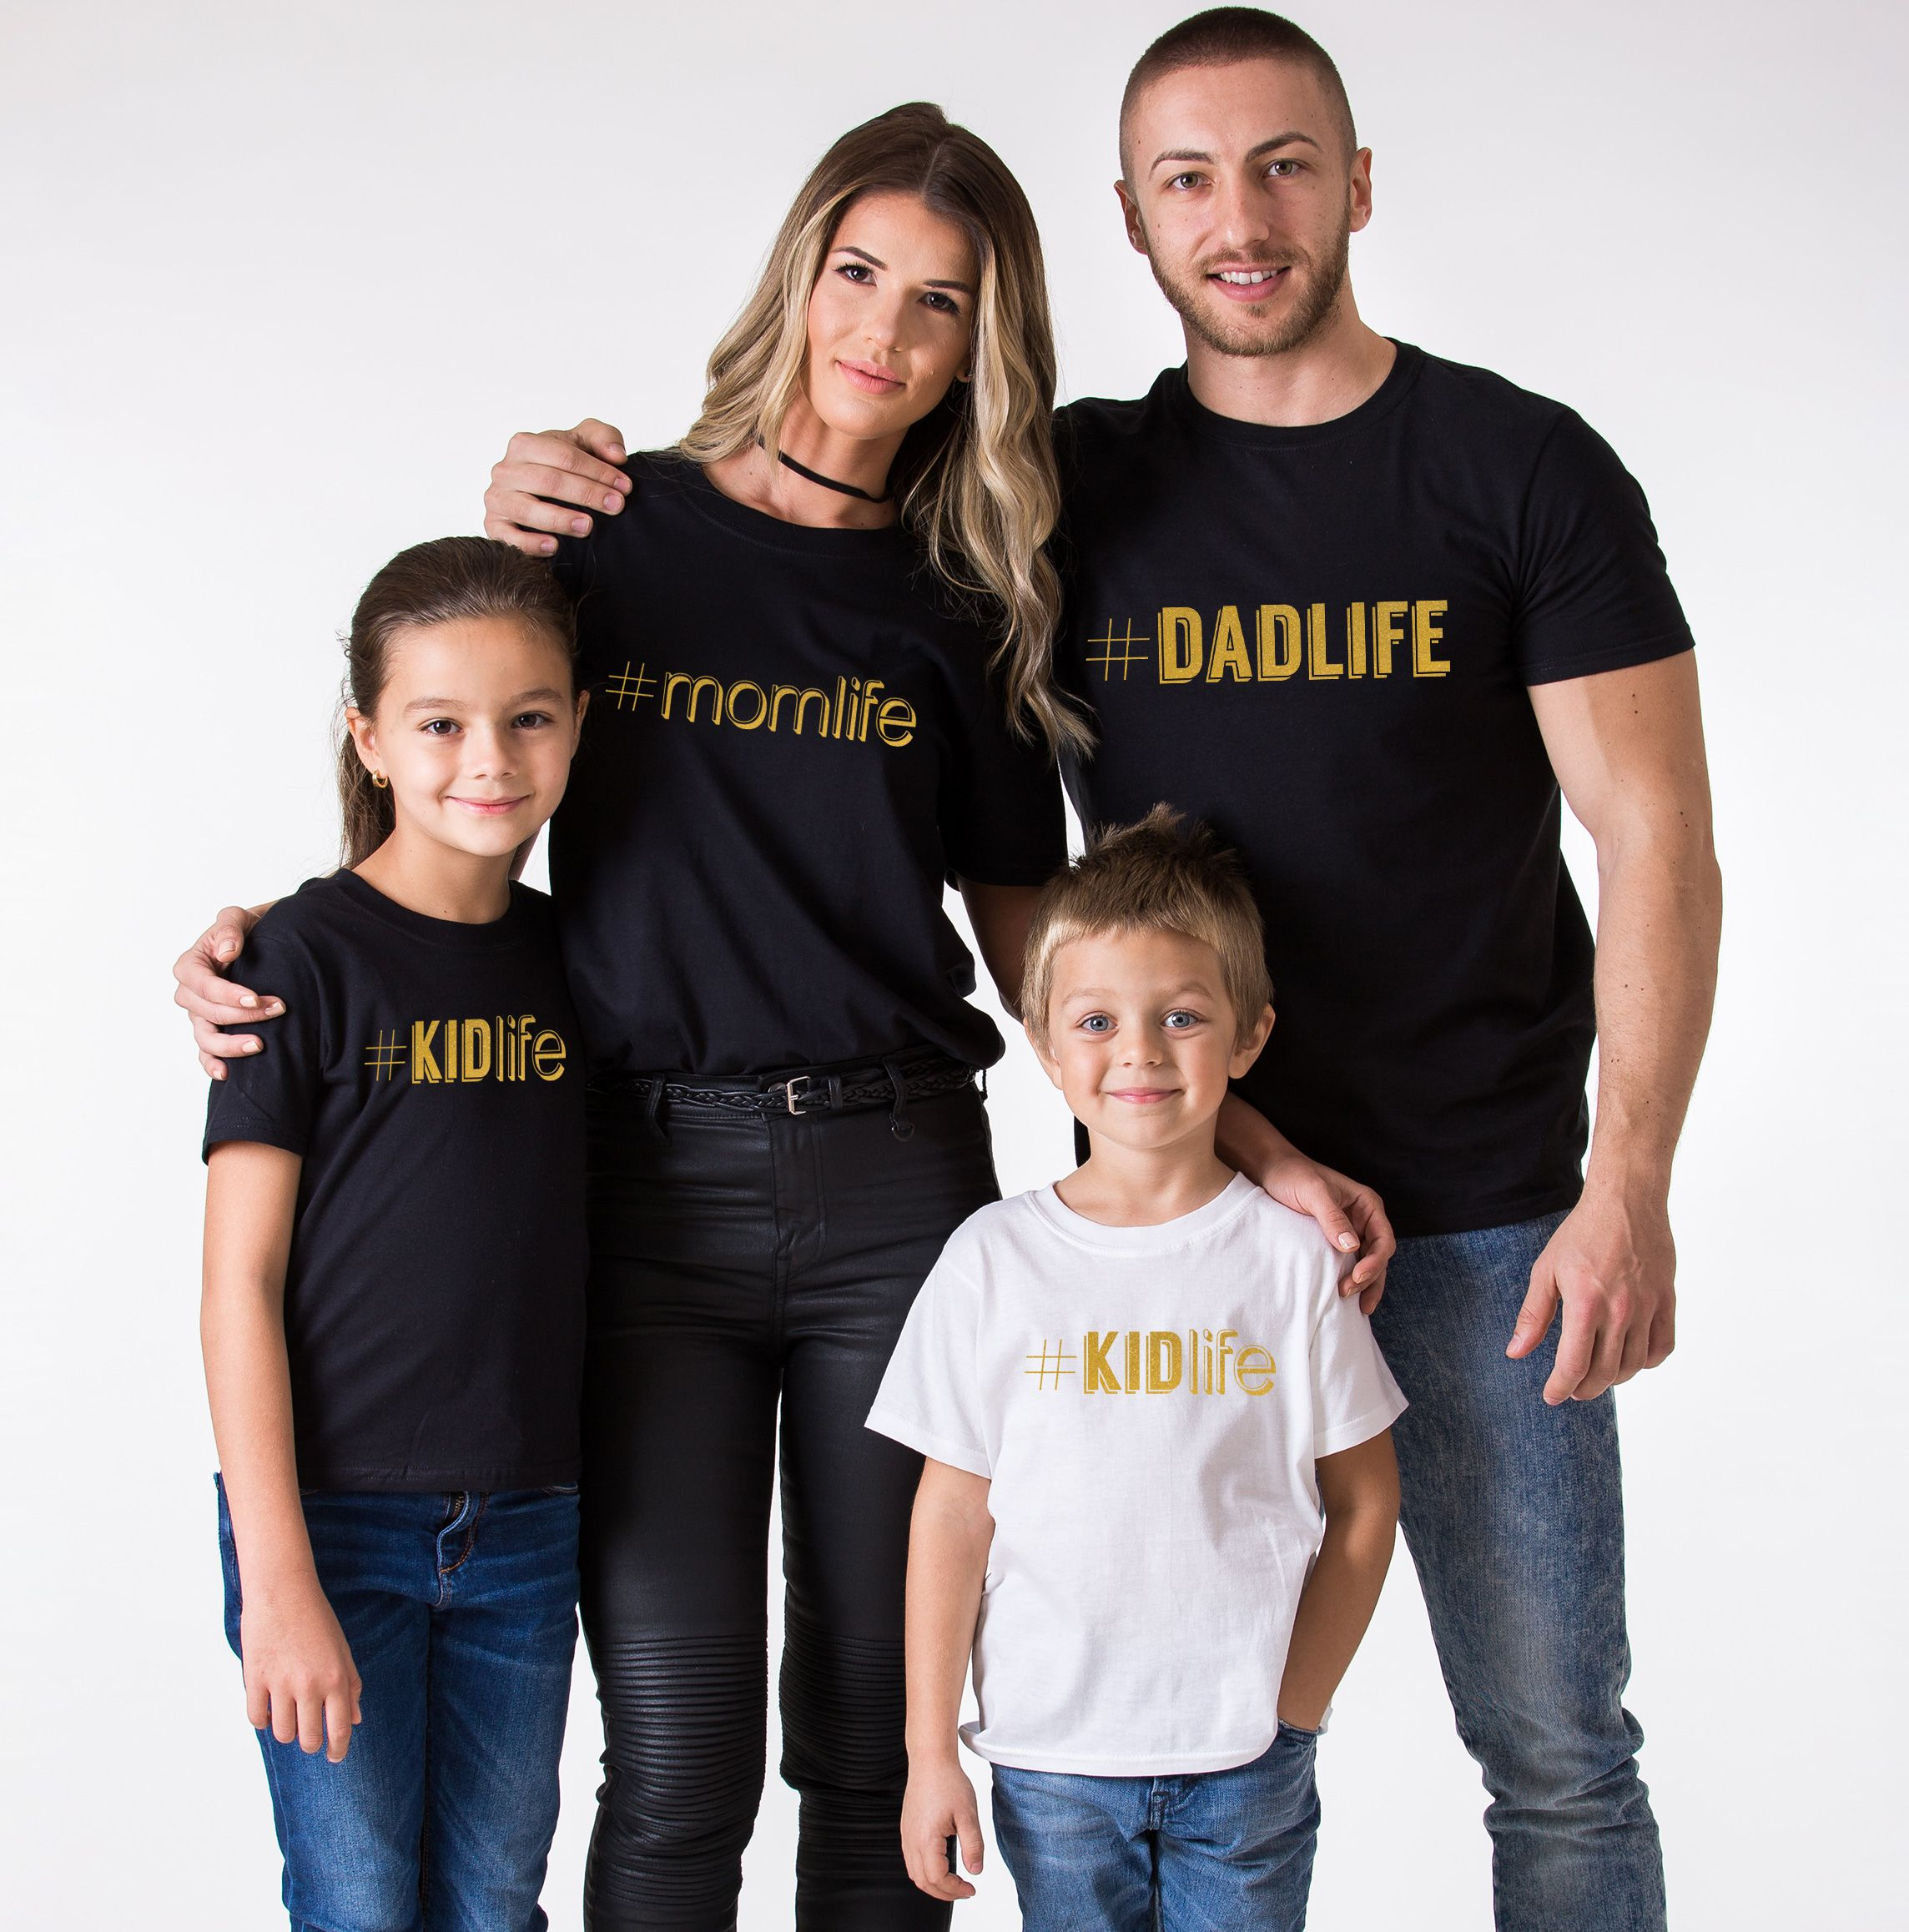 Dadlife Momlife Kidlife Babylife Shirts Matching Family Shirts